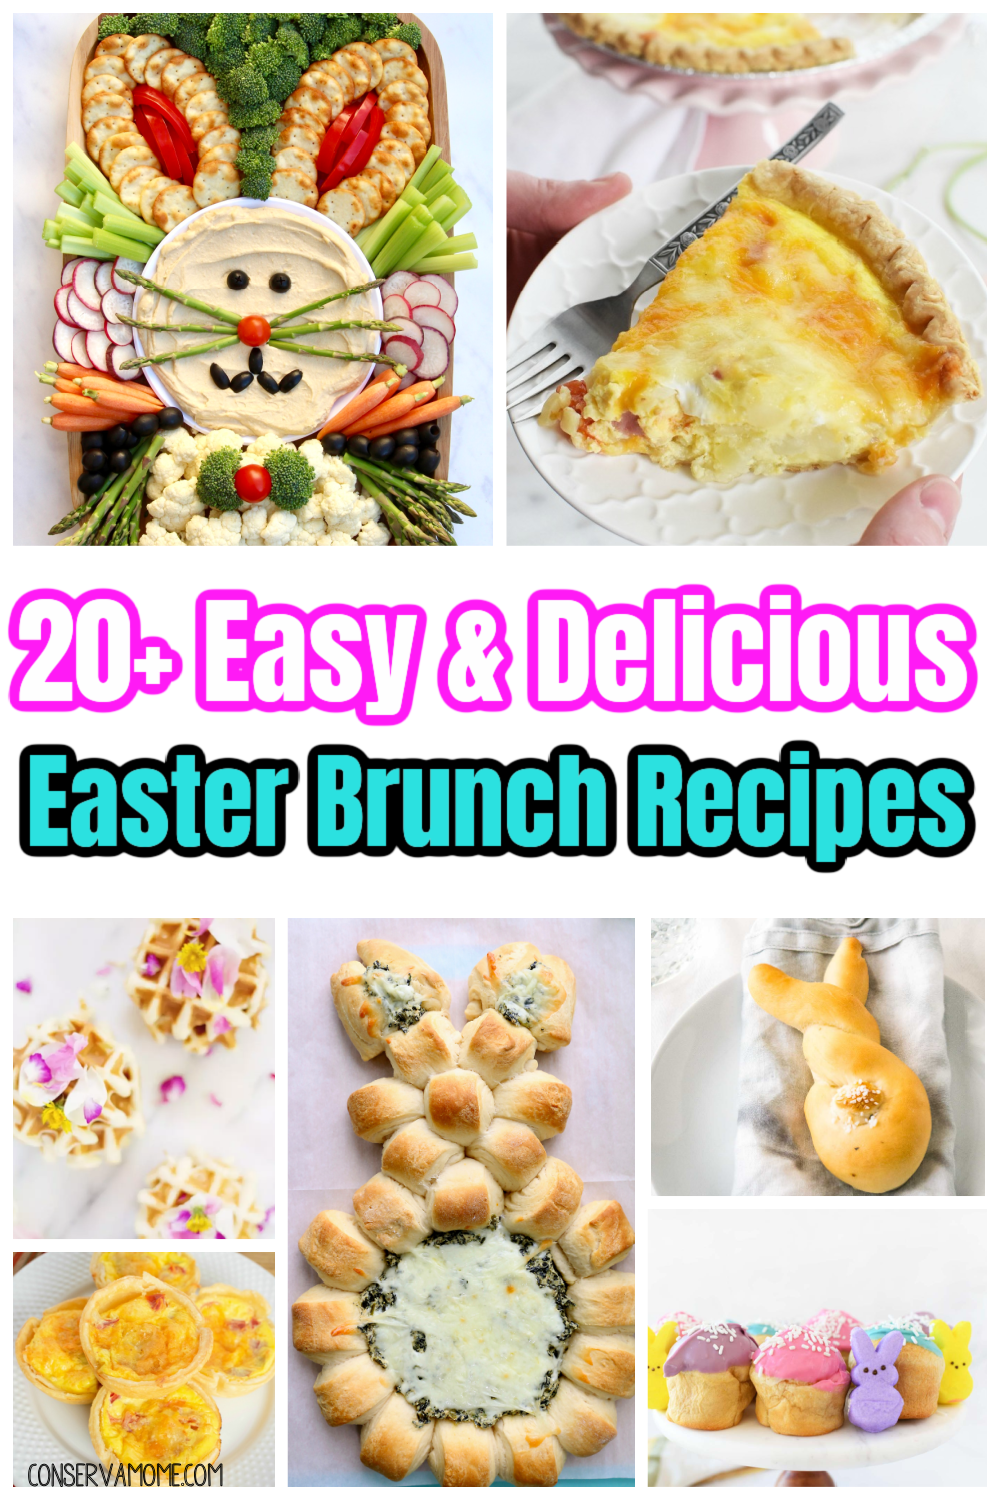 20 Easy & Delicious Easter Brunch Recipes